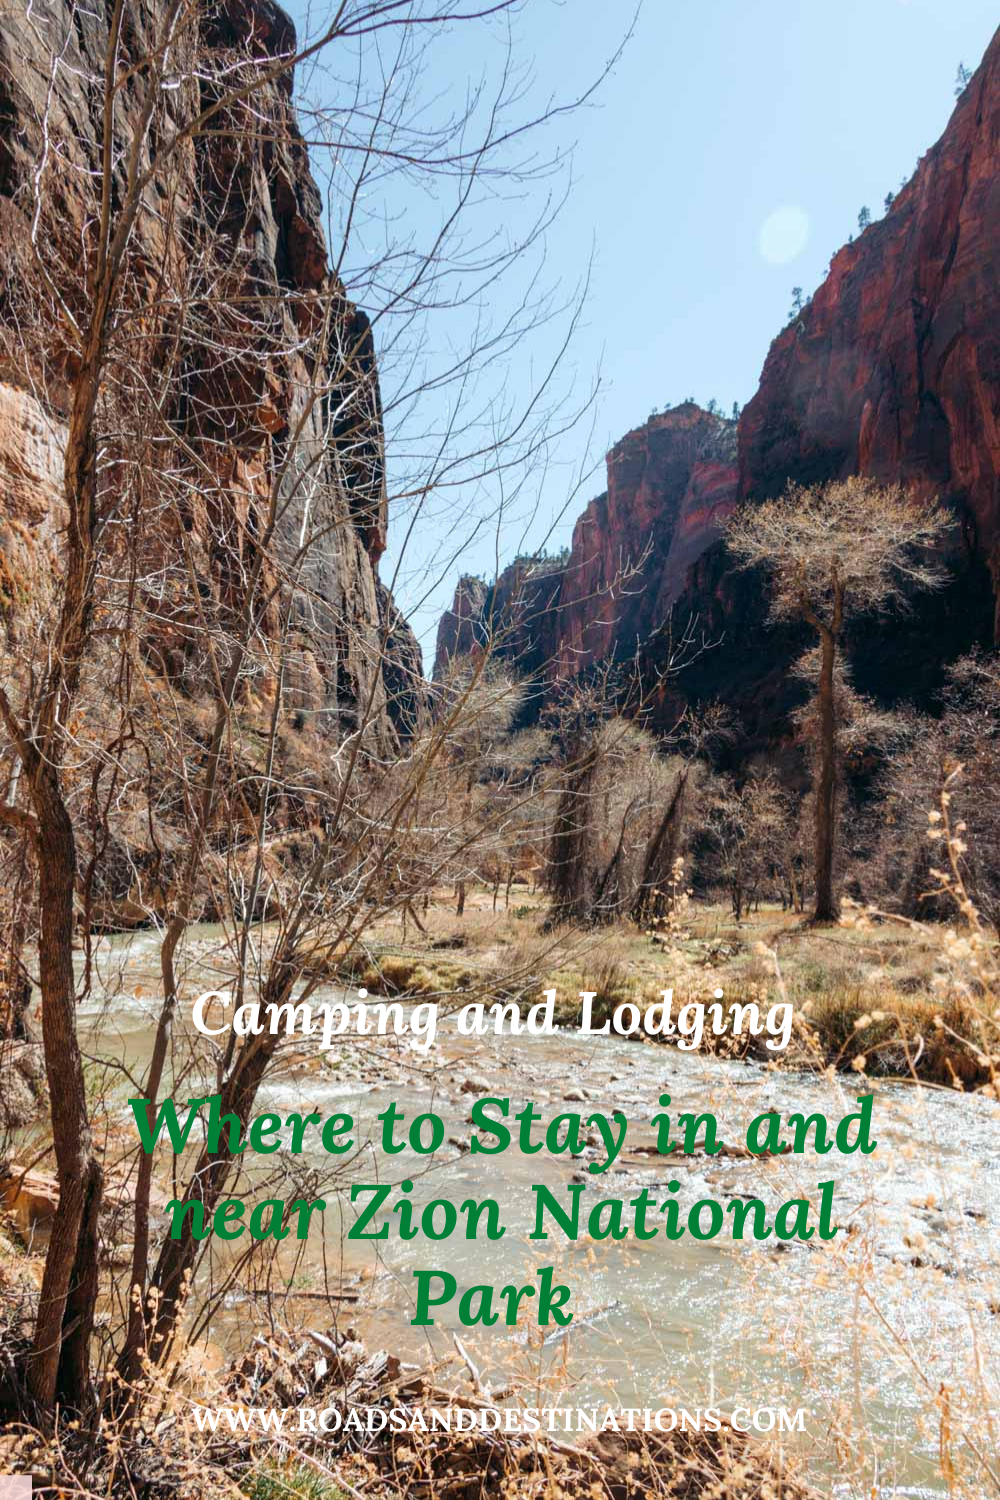 Where to stay in and near Zion National Park - Roads and Destinations